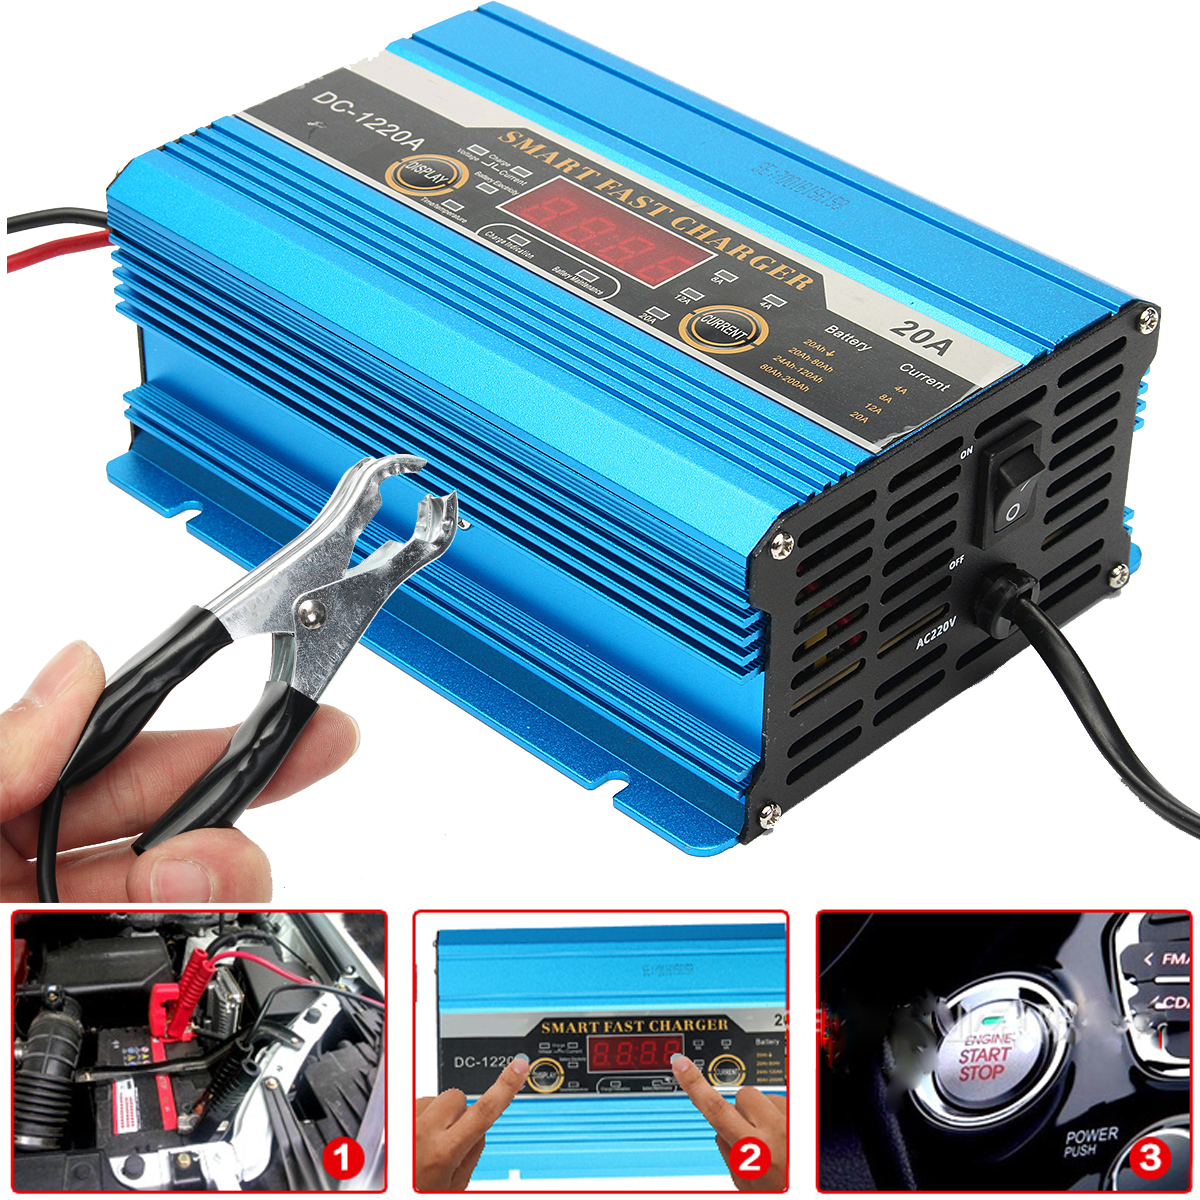 12V 20A 200AH Car Battery Charger Motorcycle Battery Pure Copper Smart Fast font b Repair b